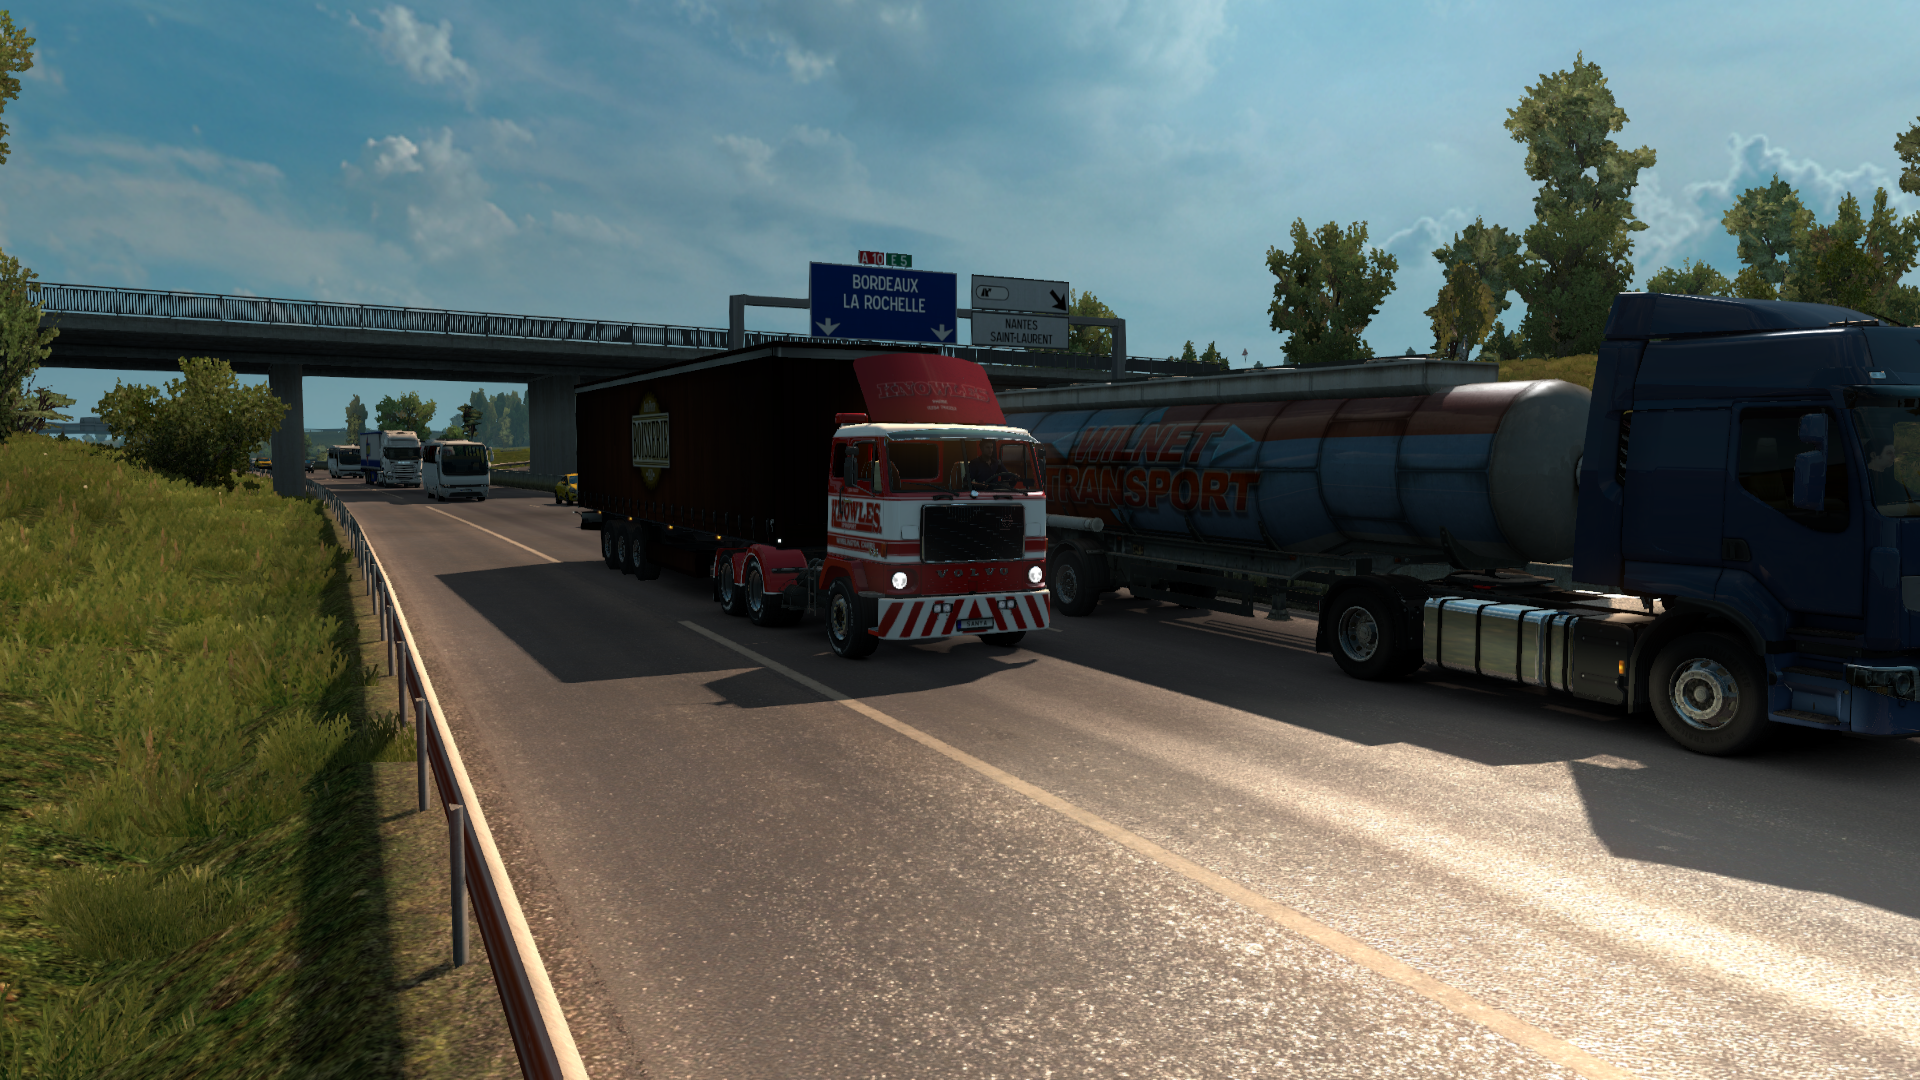 ets2_20180624_205233_00.png - -